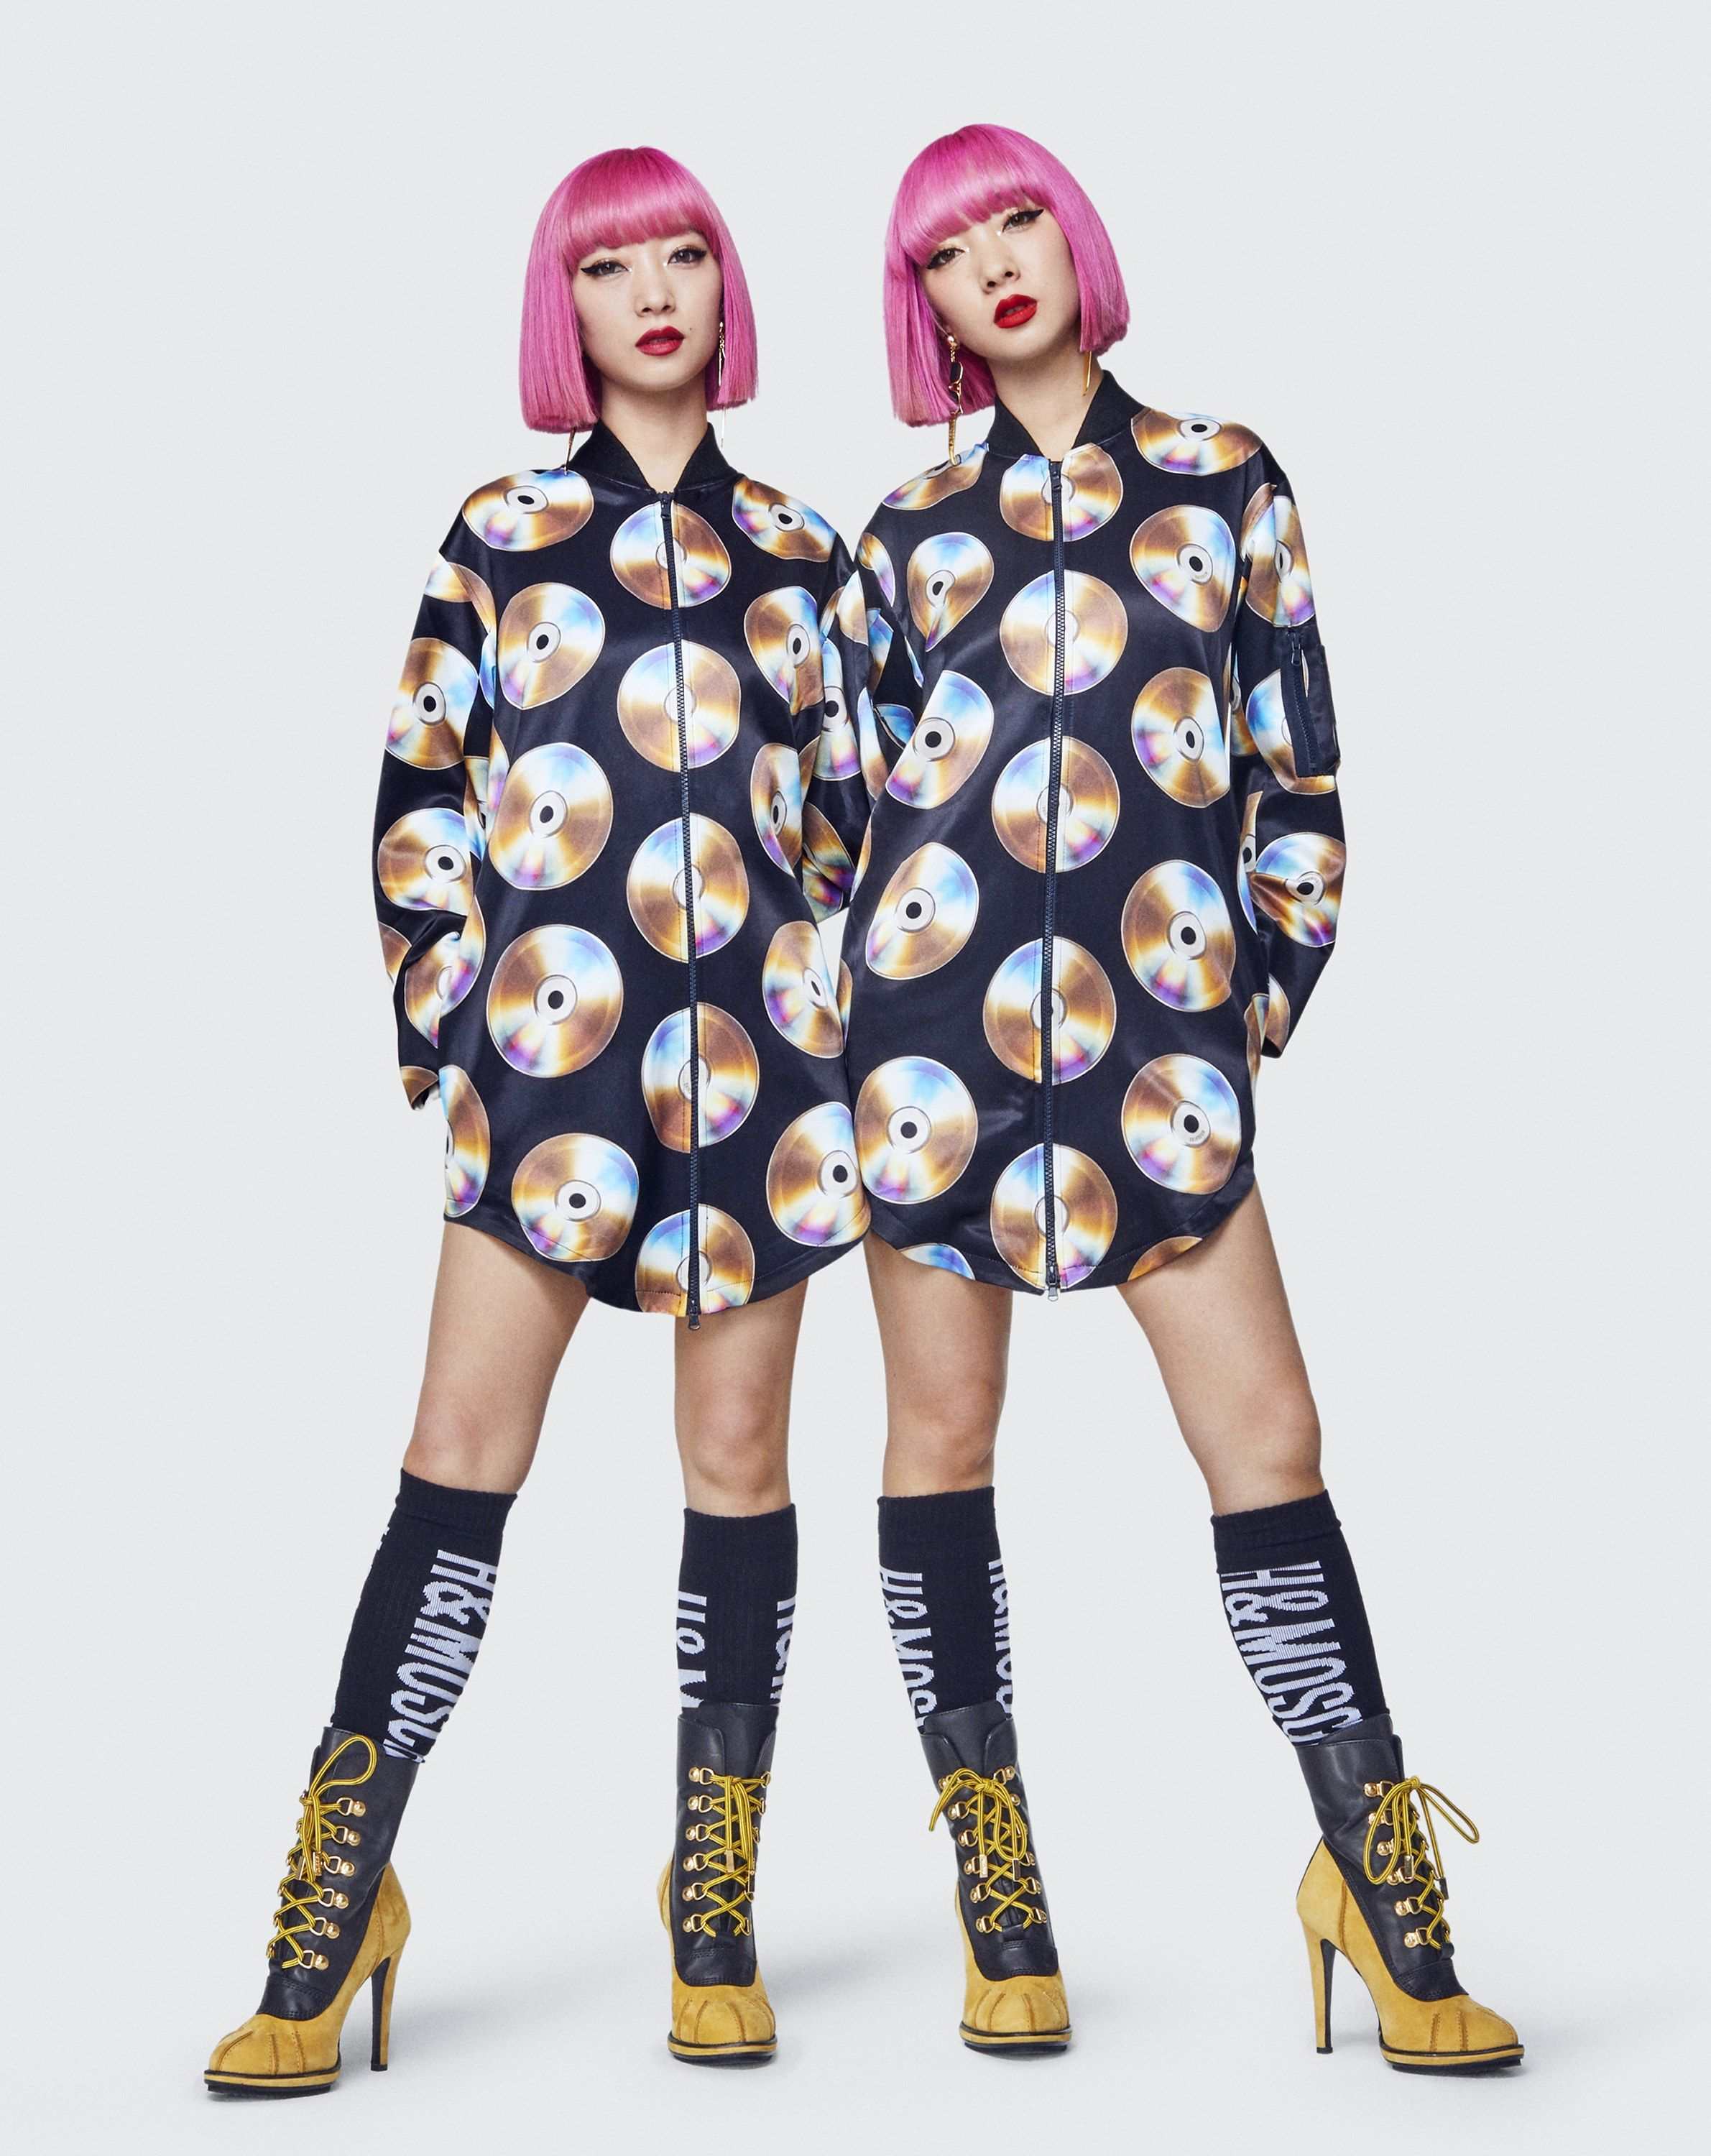 e10eb946c2 Moschino x H M  See Every Look From the Collaboration